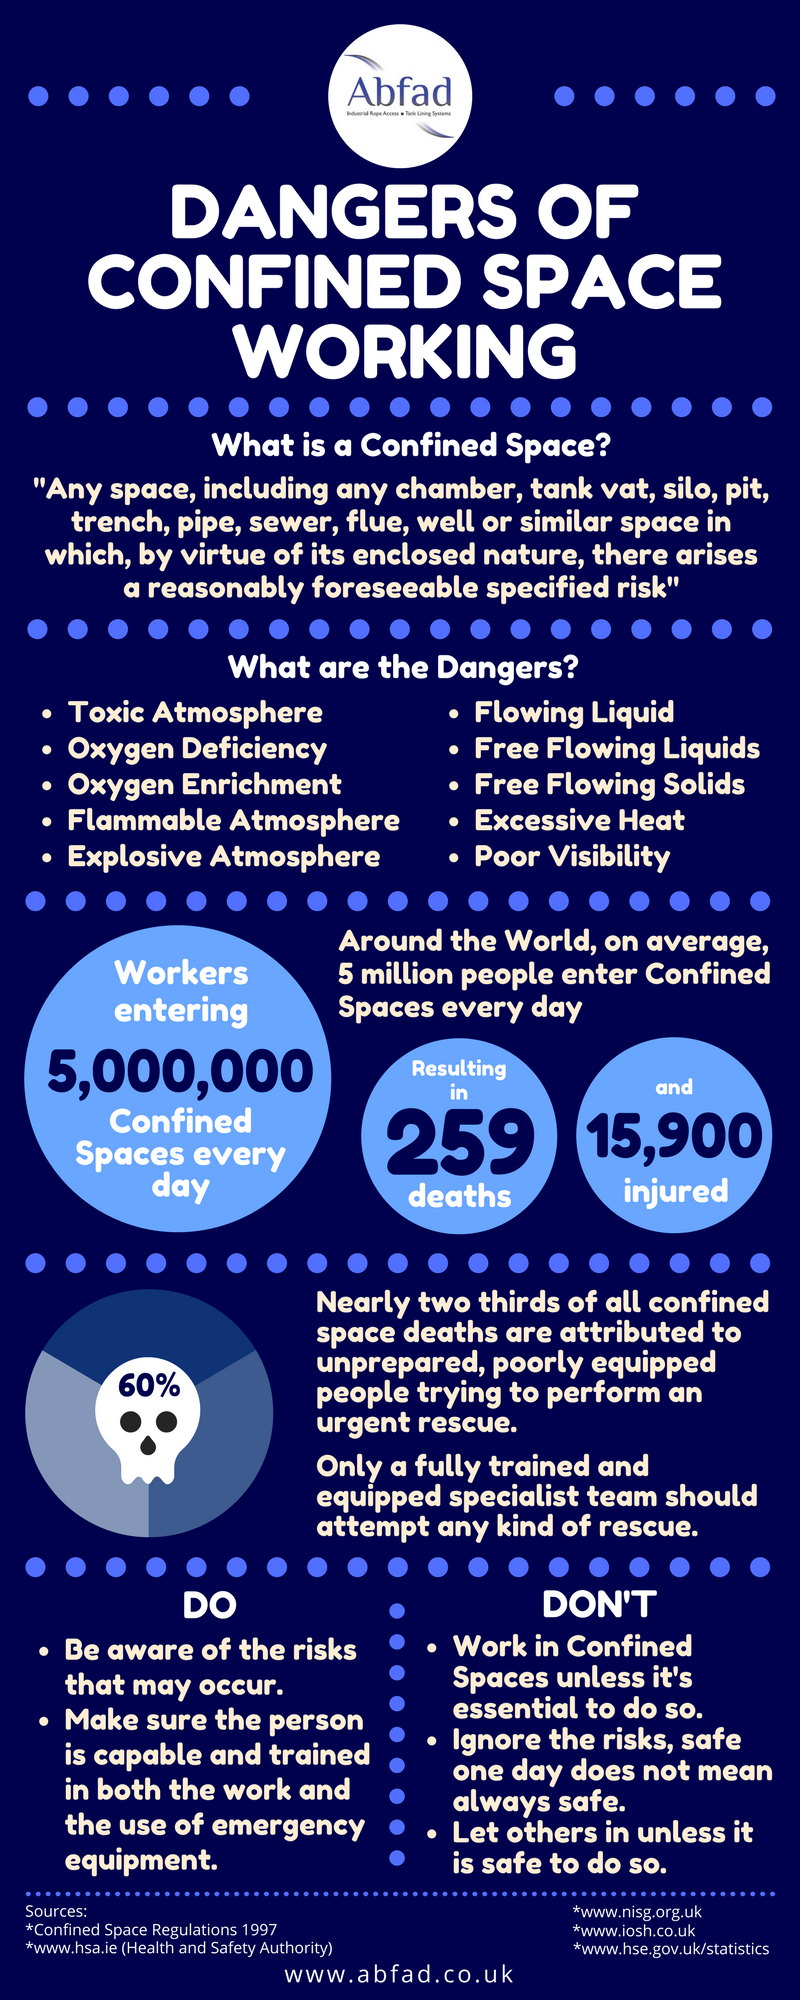 Dangers of Confined Space working infographic